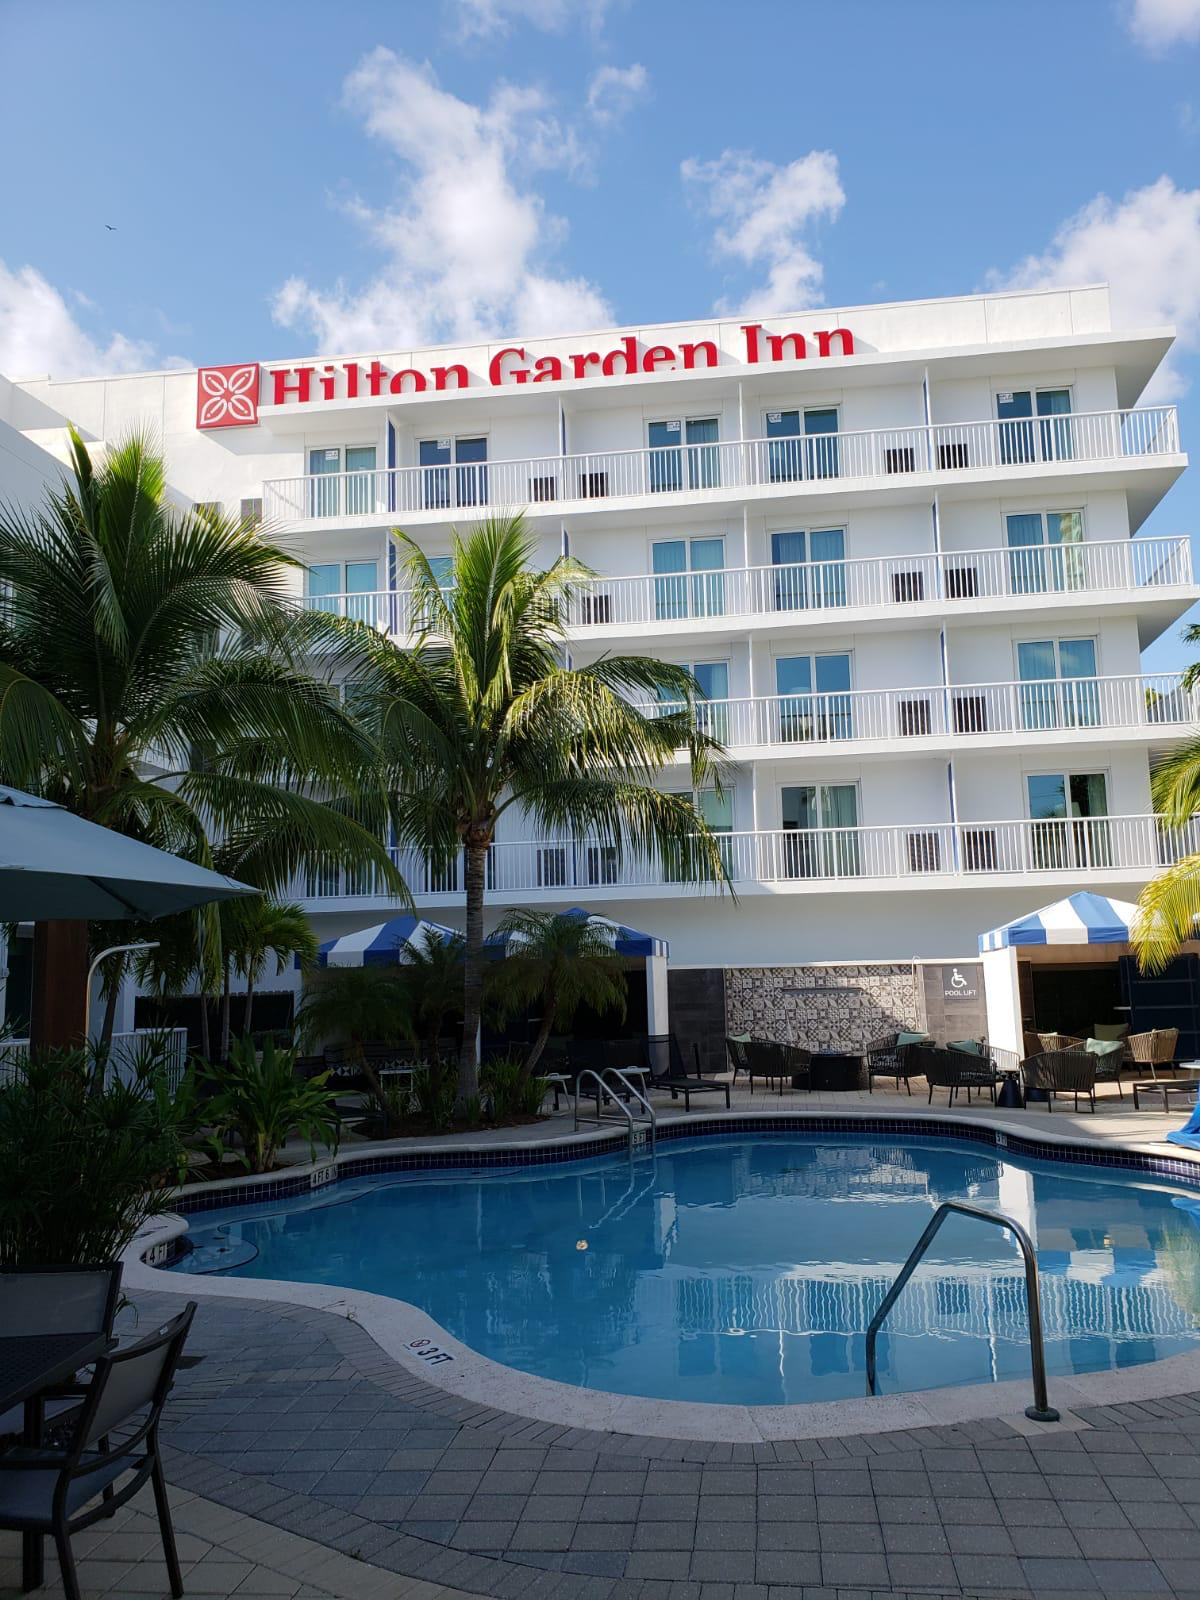 Hilton Garden Inn Continues To Expand With A New Property In Miami/Brickell